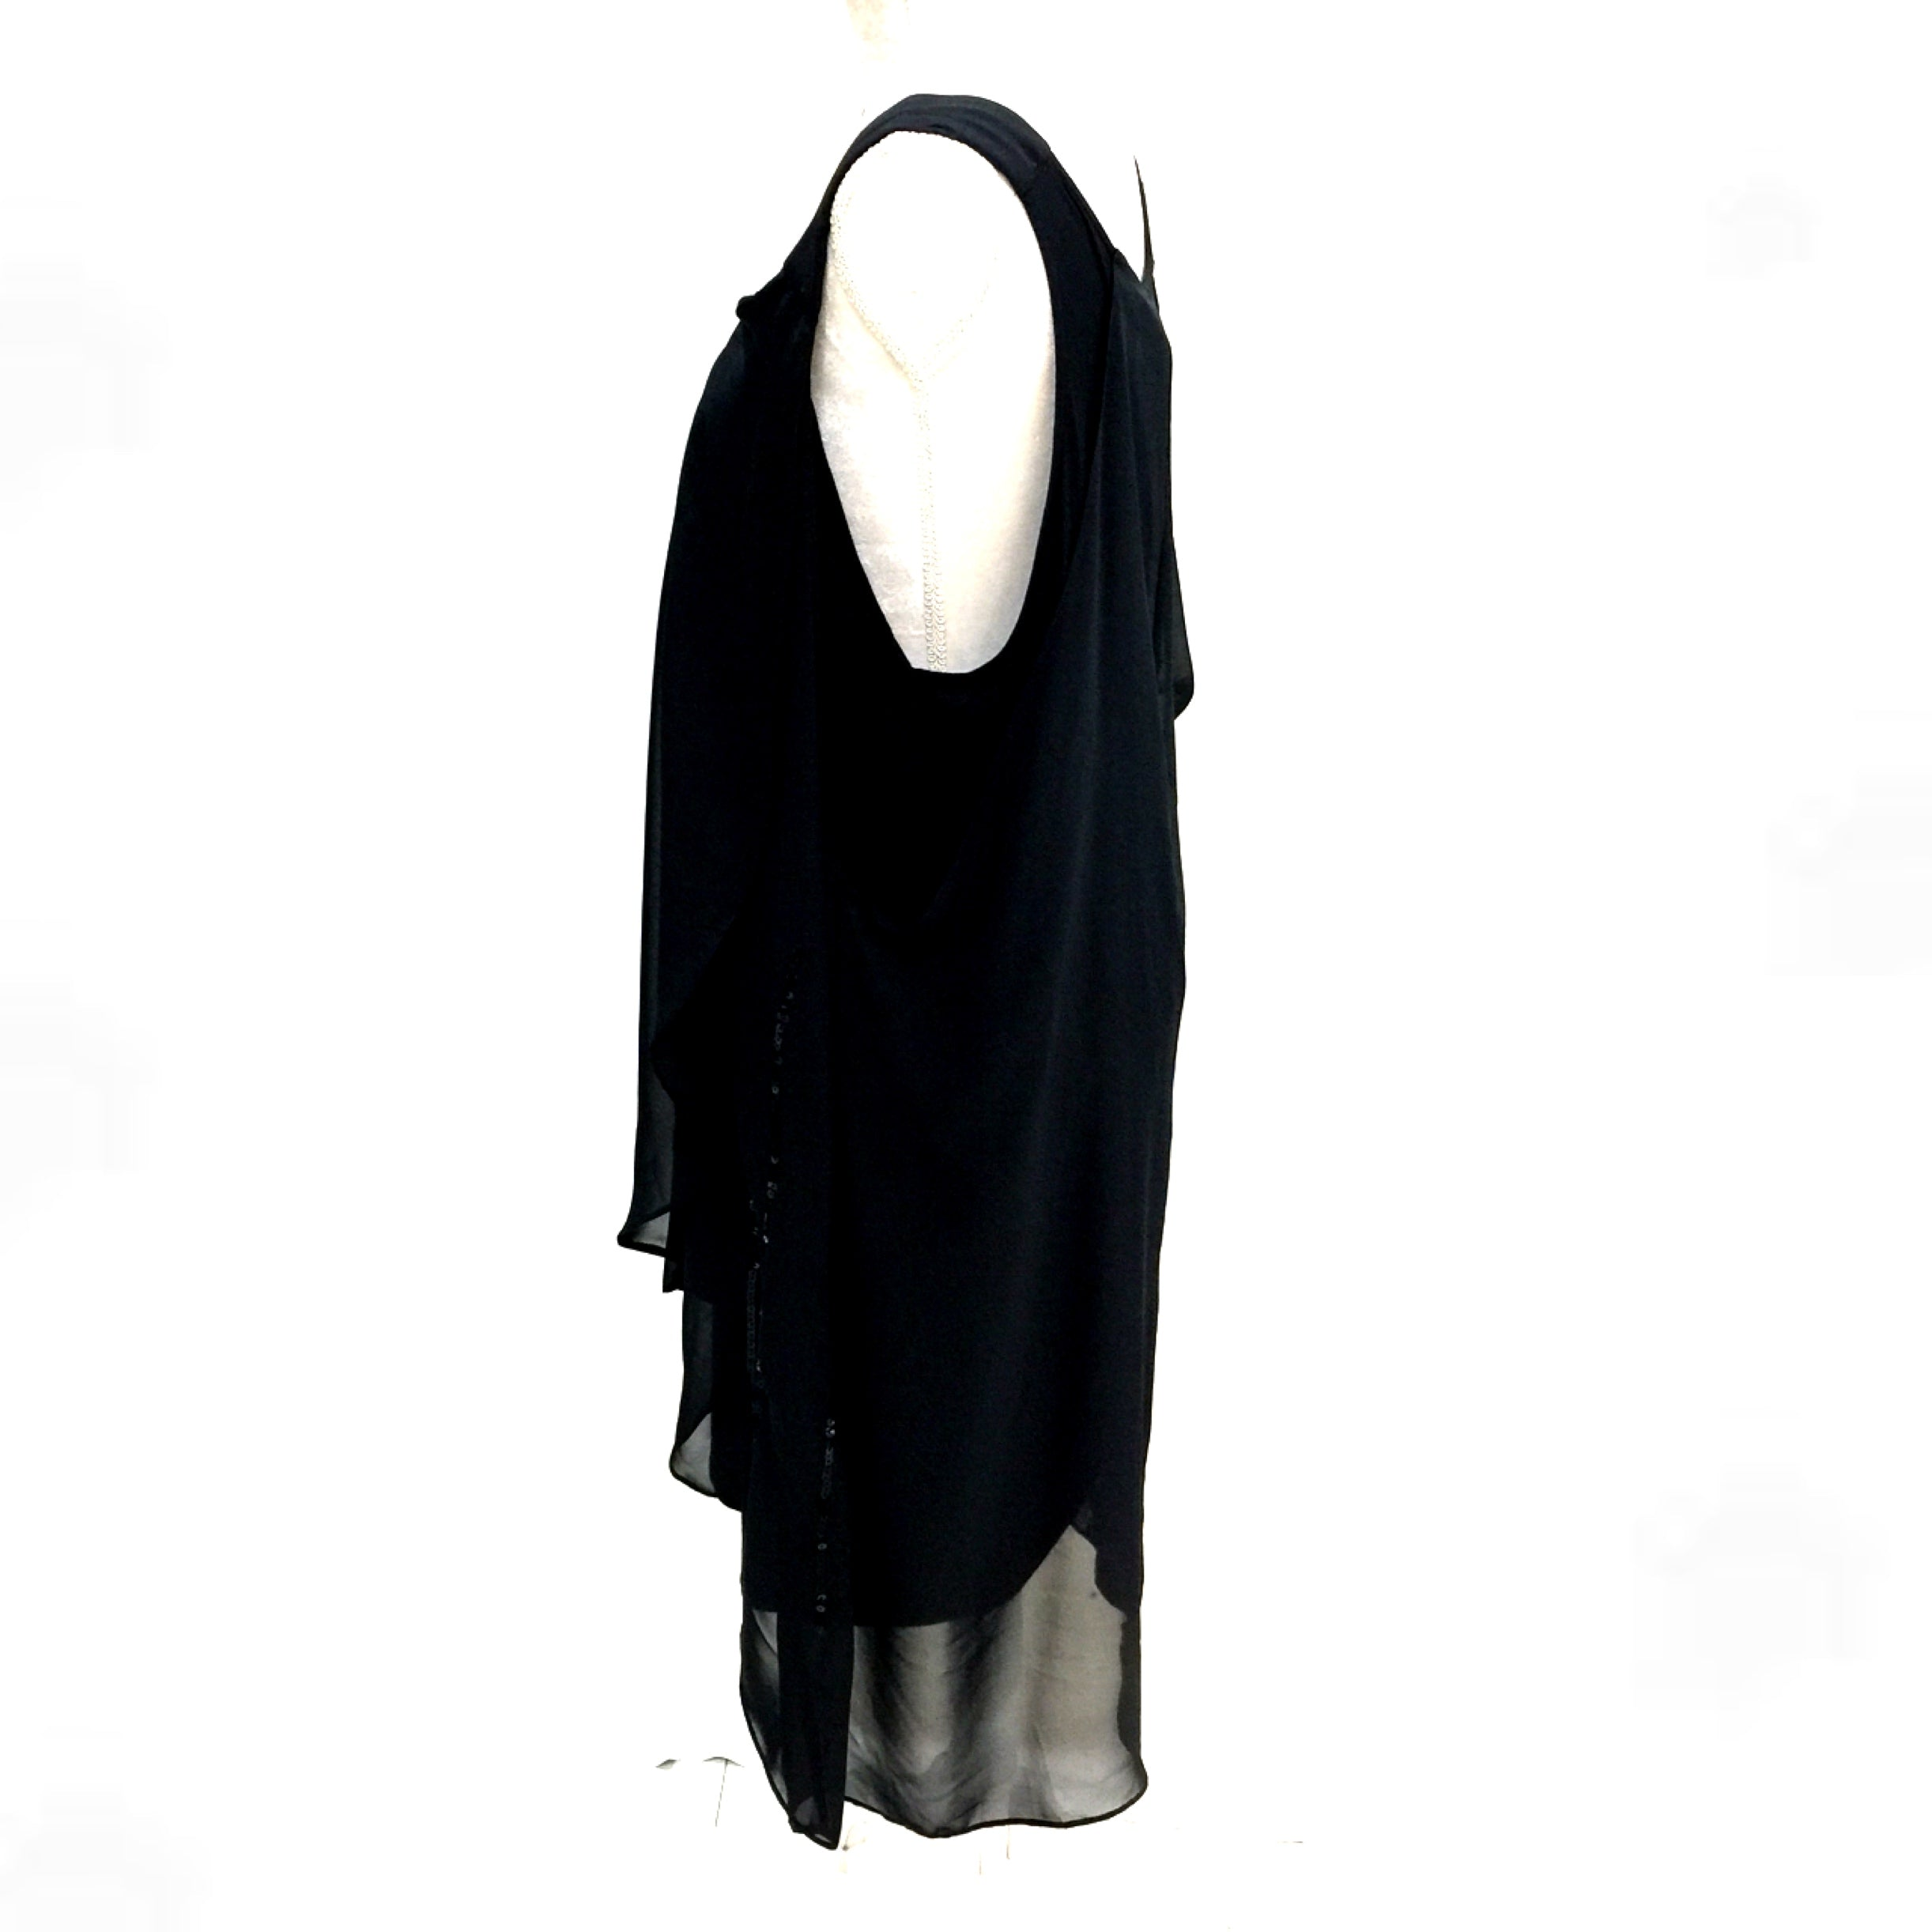 Ed.it.ed Black Dress or Top